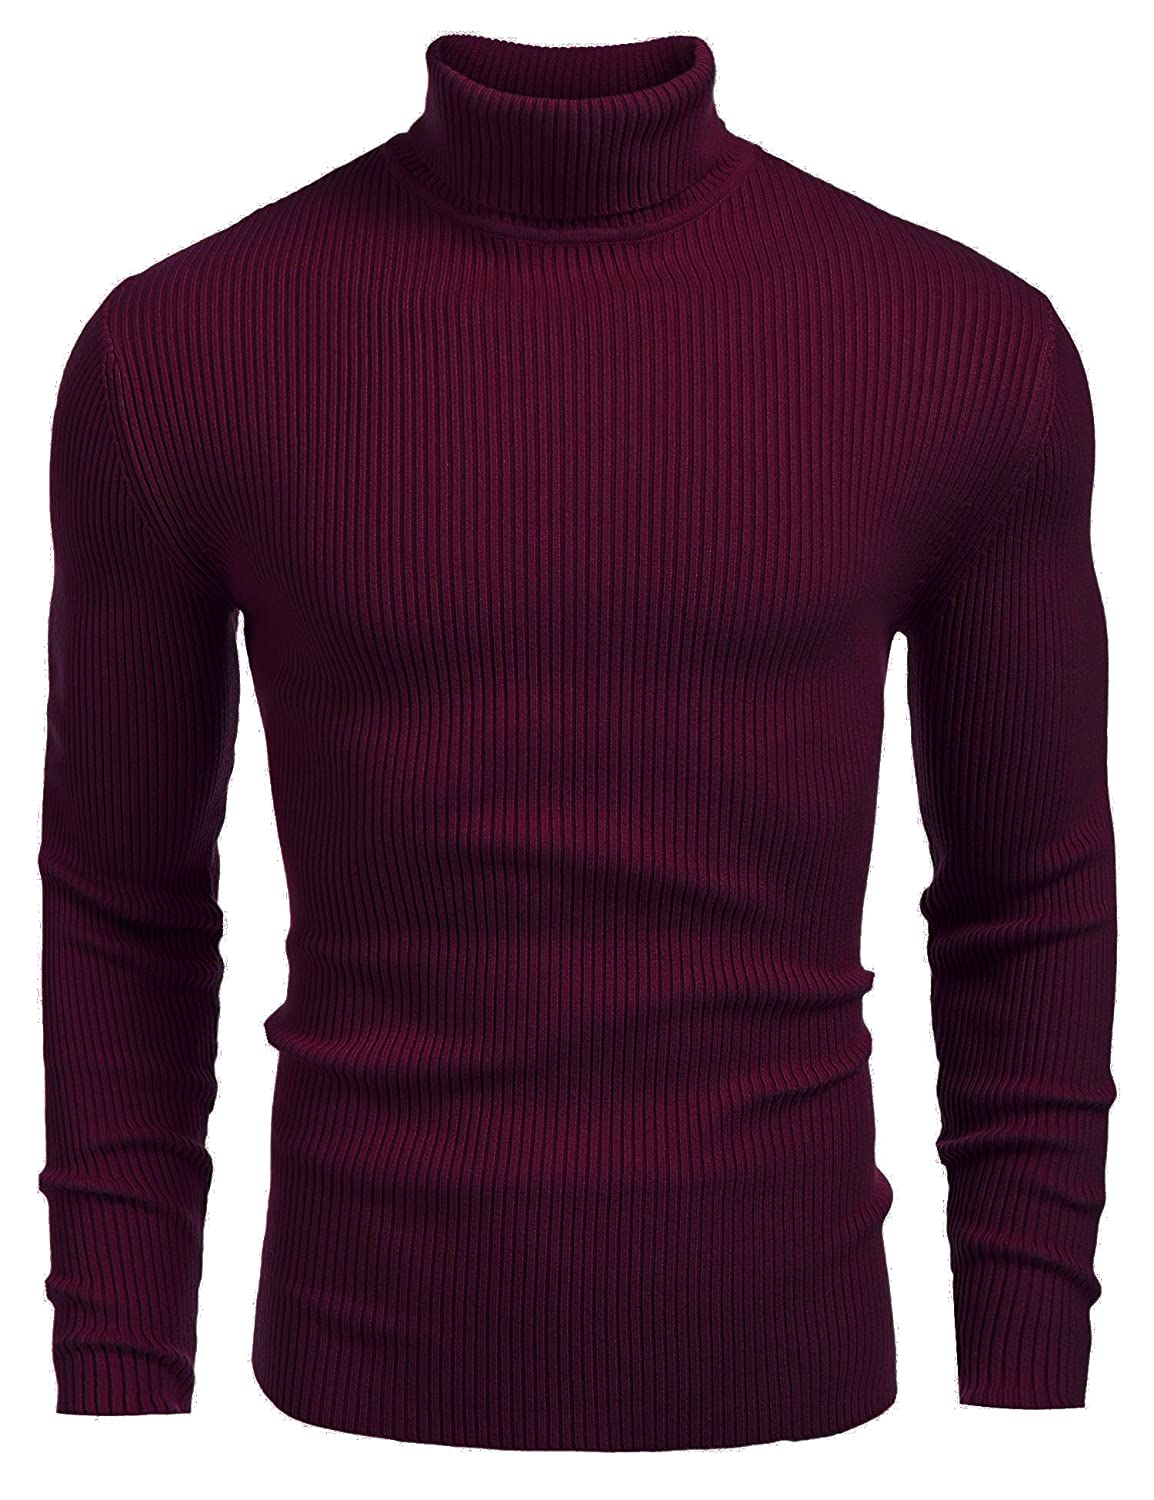 JINIDU Mens Casual Basic Ribbed Slim Fit Knitted Pullover Turtleneck Thermal Sweater AS12240811